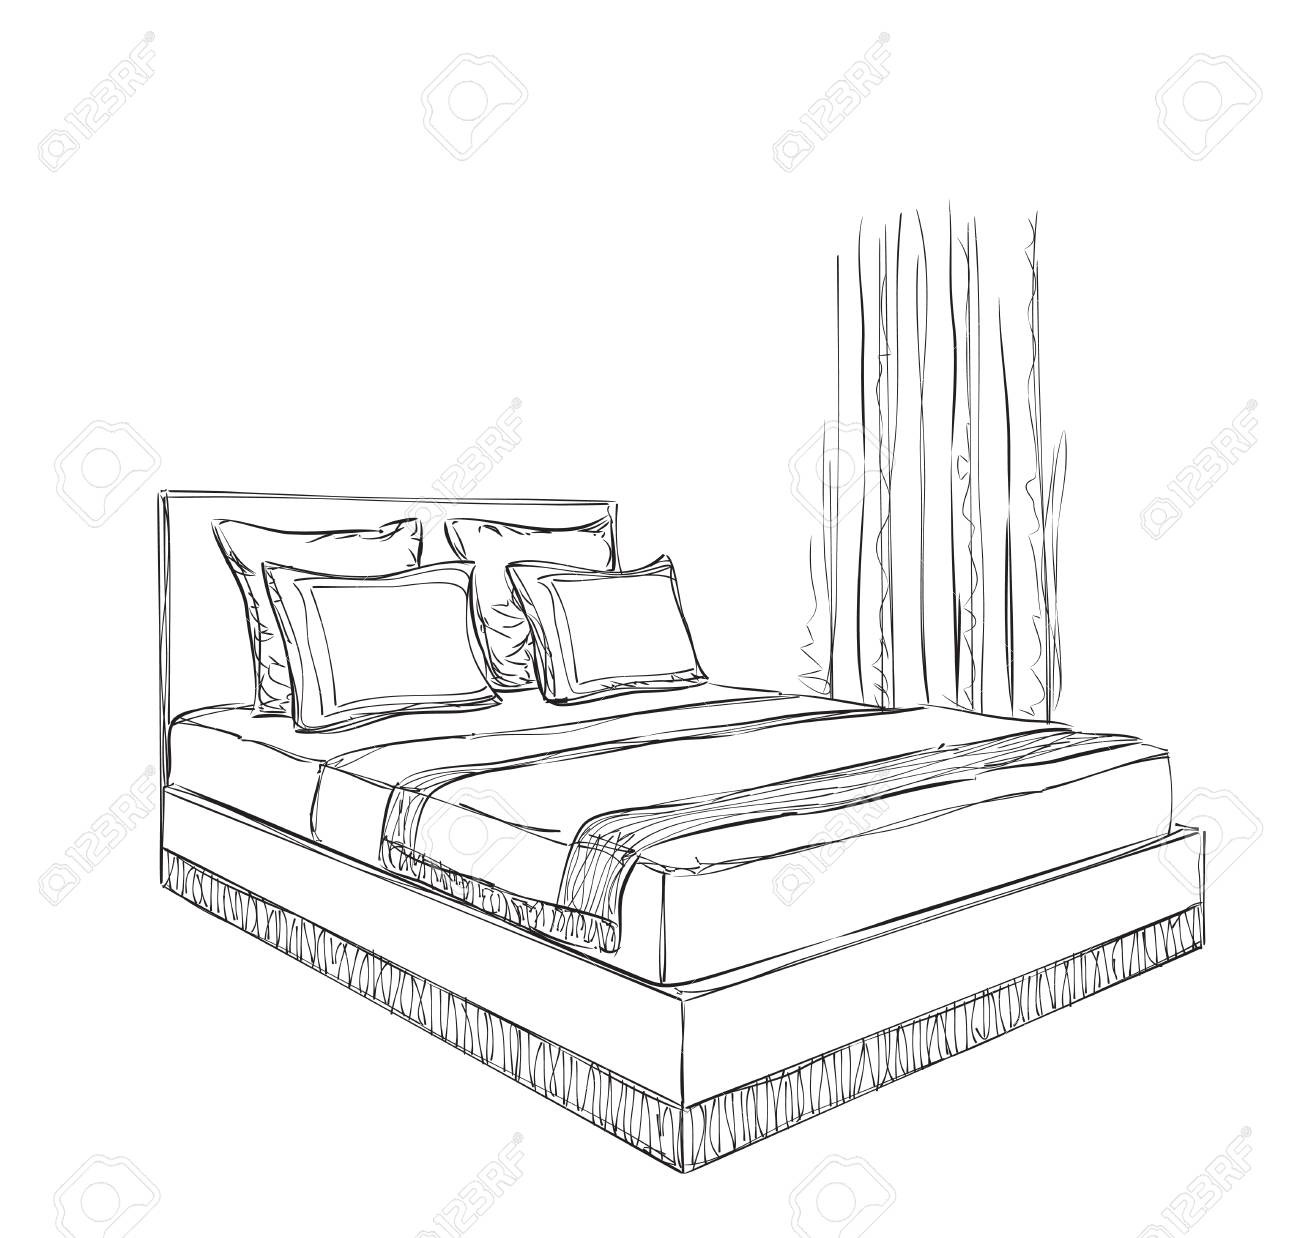 Interior Design Of The Classic Bedroom With Double Bed Royalty Free Cliparts Vectors And Stock Illustration Image 57445338